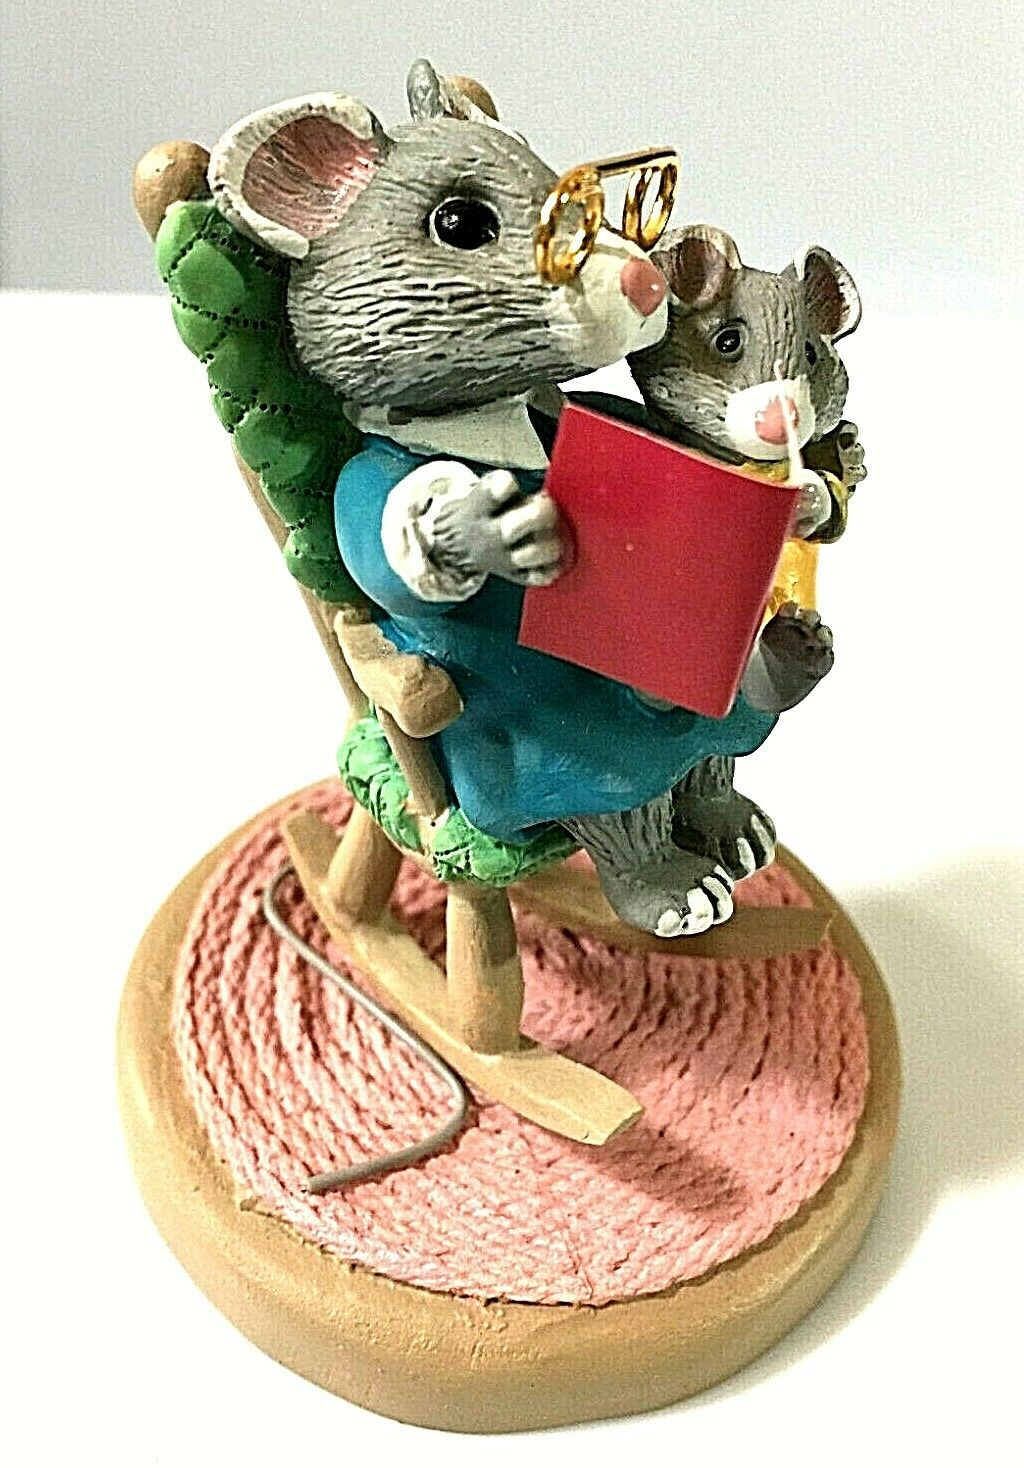 Mice in Rocking Chair - Tender Touches Figurine